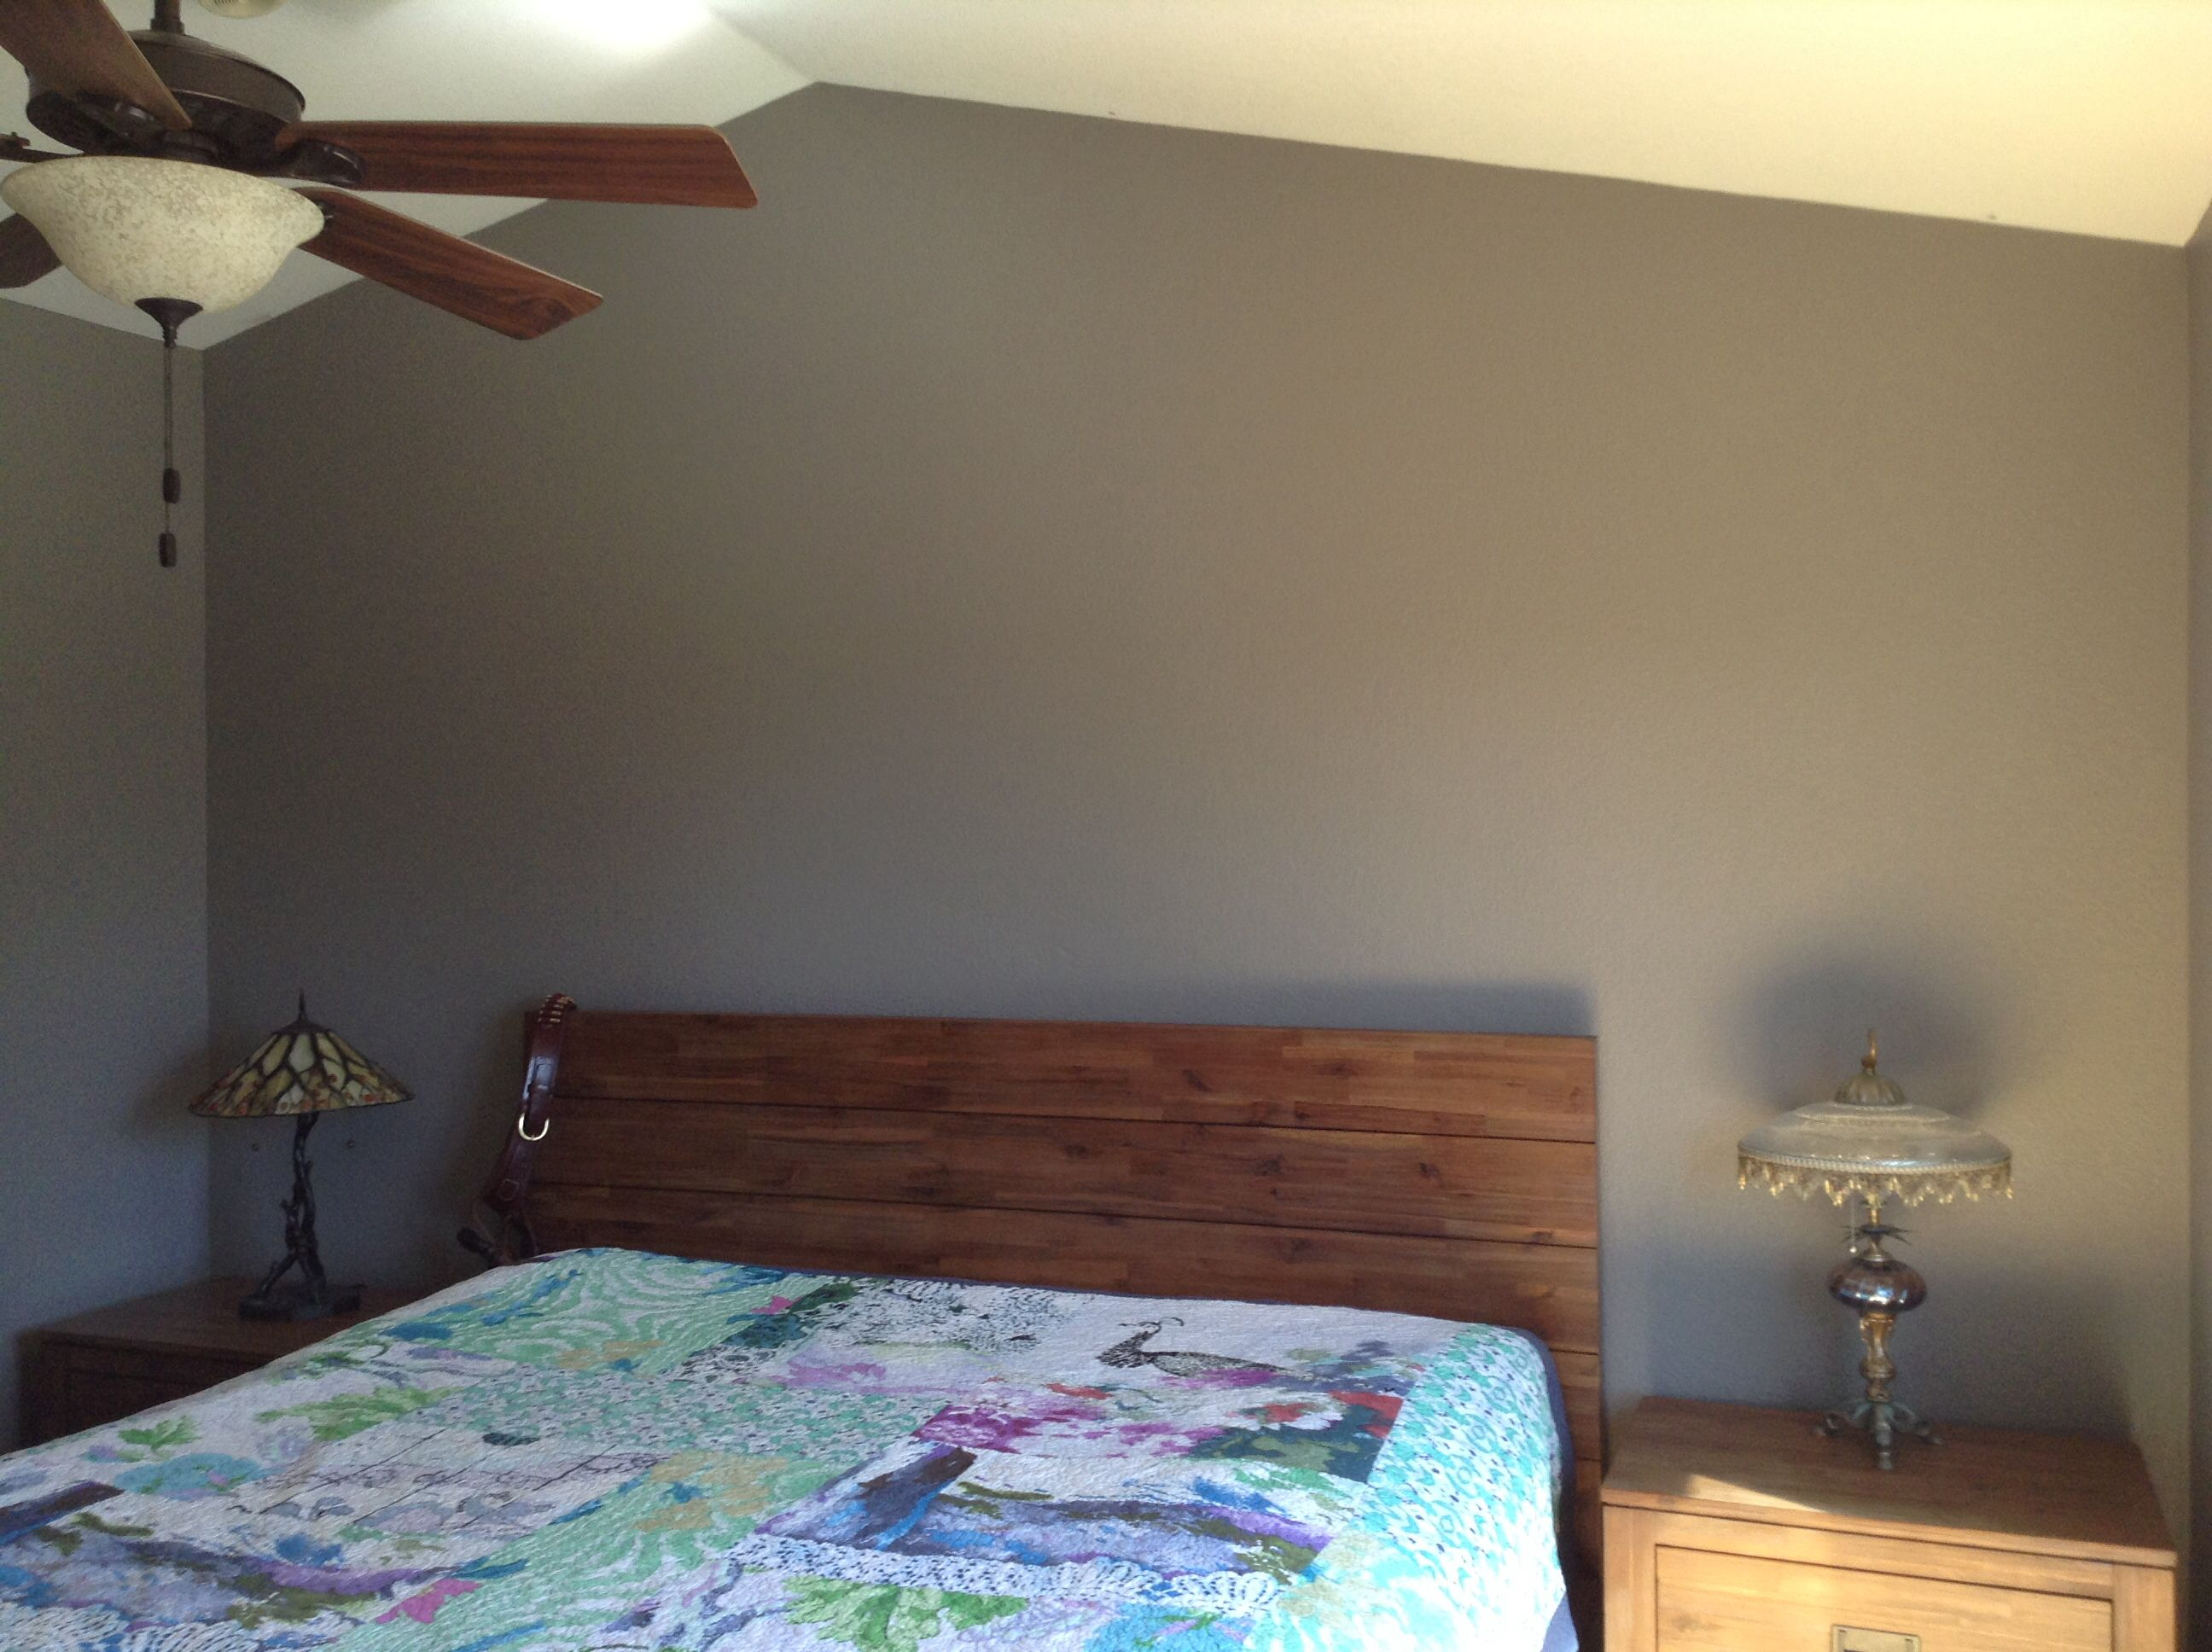 Master Bedroom Paint Colors Sherwin Williams master bedroom: sherwin williams dovetail gray; sw 7018 cool